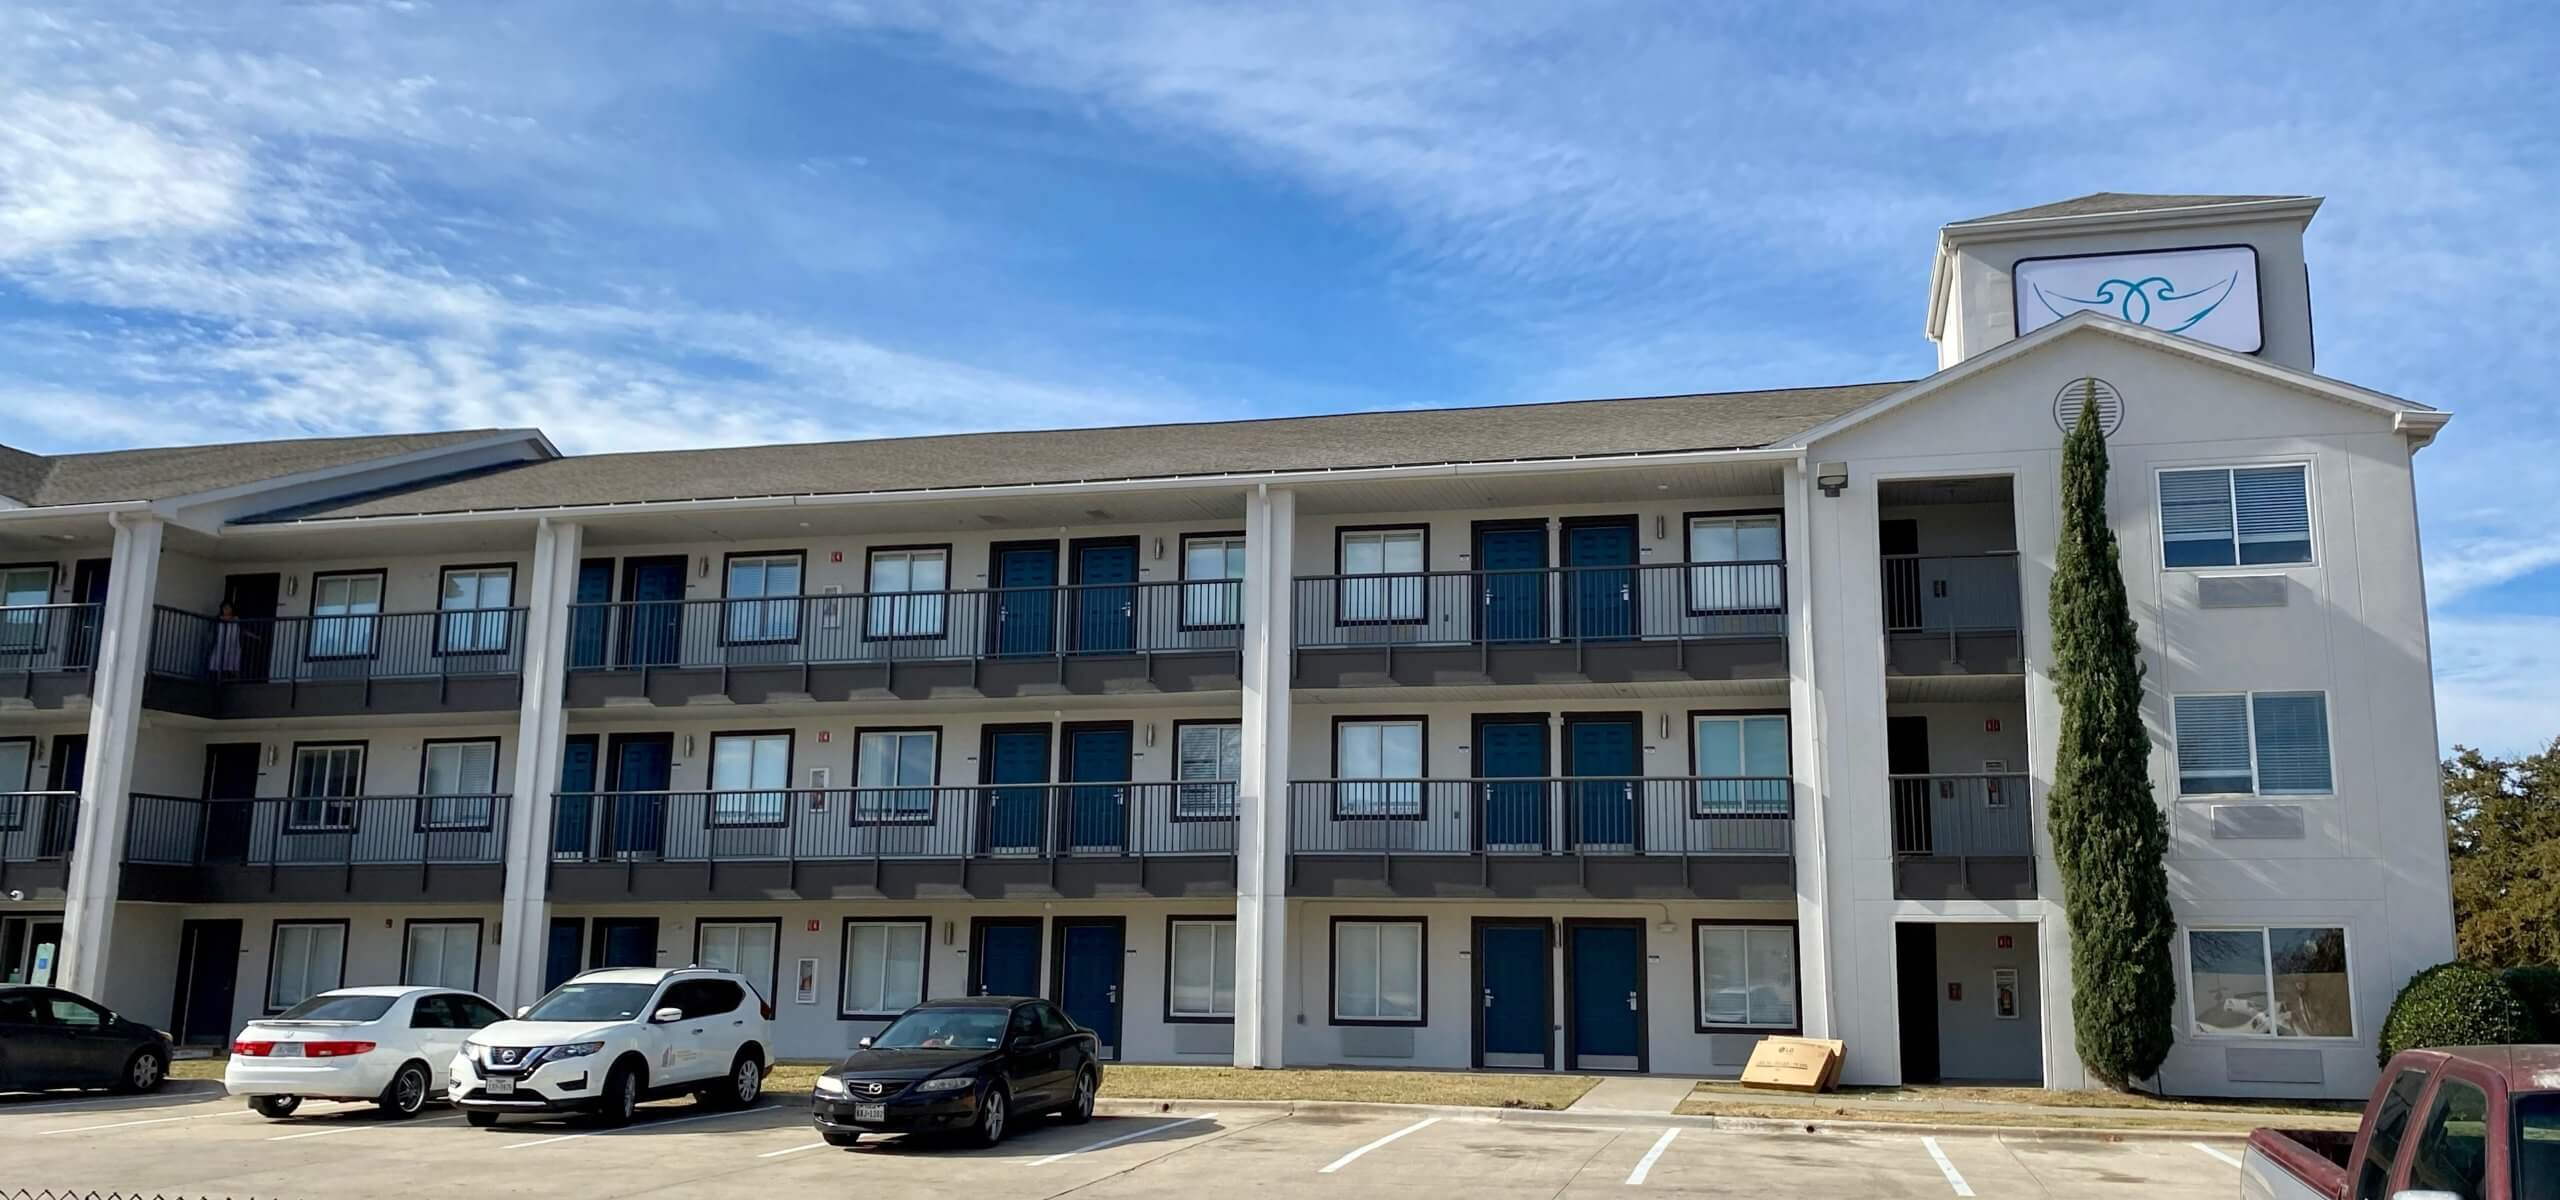 Fort Worth Housing Solutions Opens New Permanent Supportive Housing Community